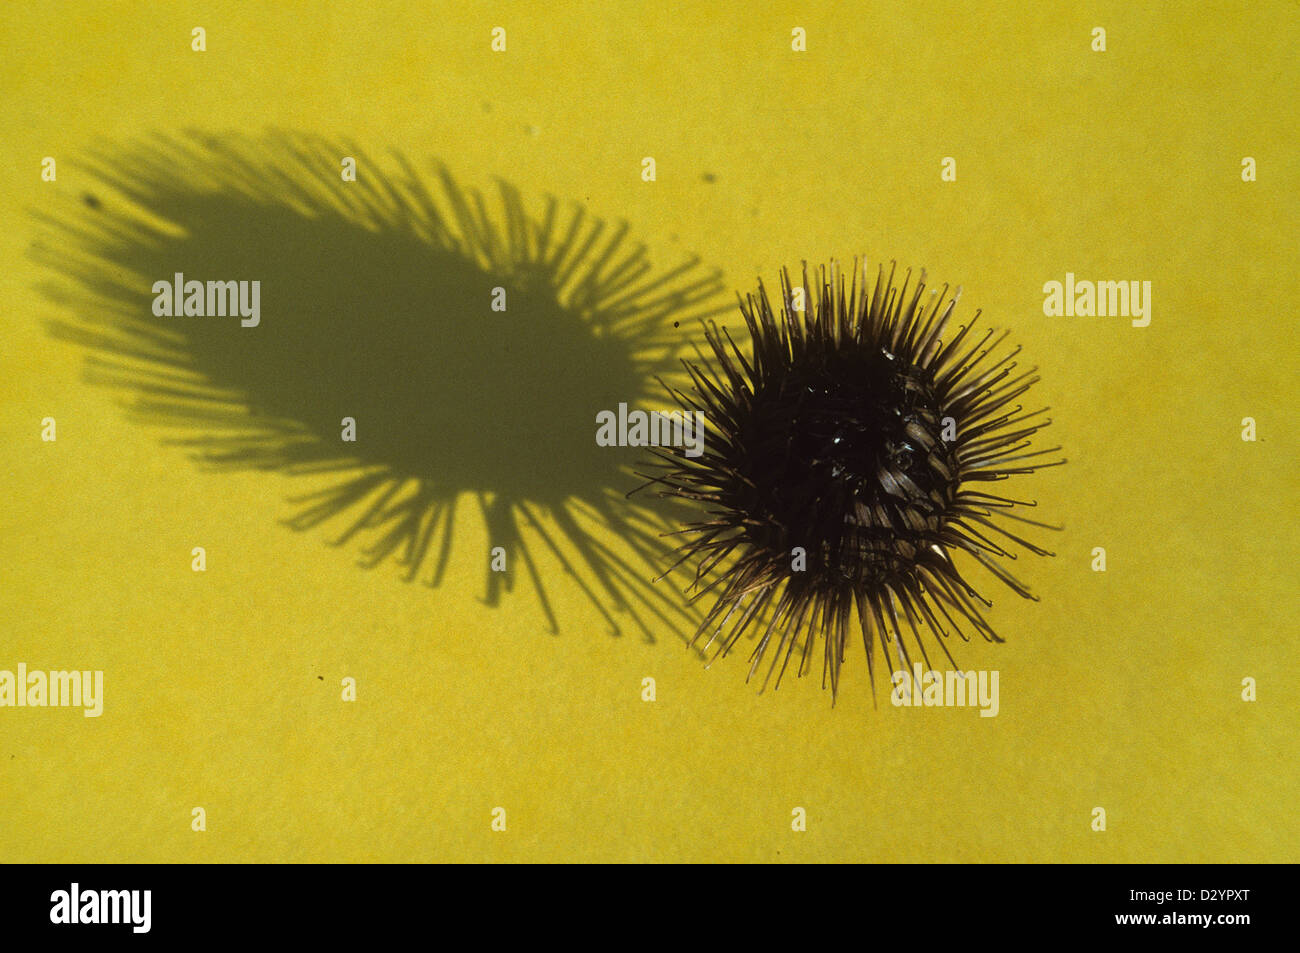 Burdock burr and shadow (inspiration for invention of Velcro) - Stock Image